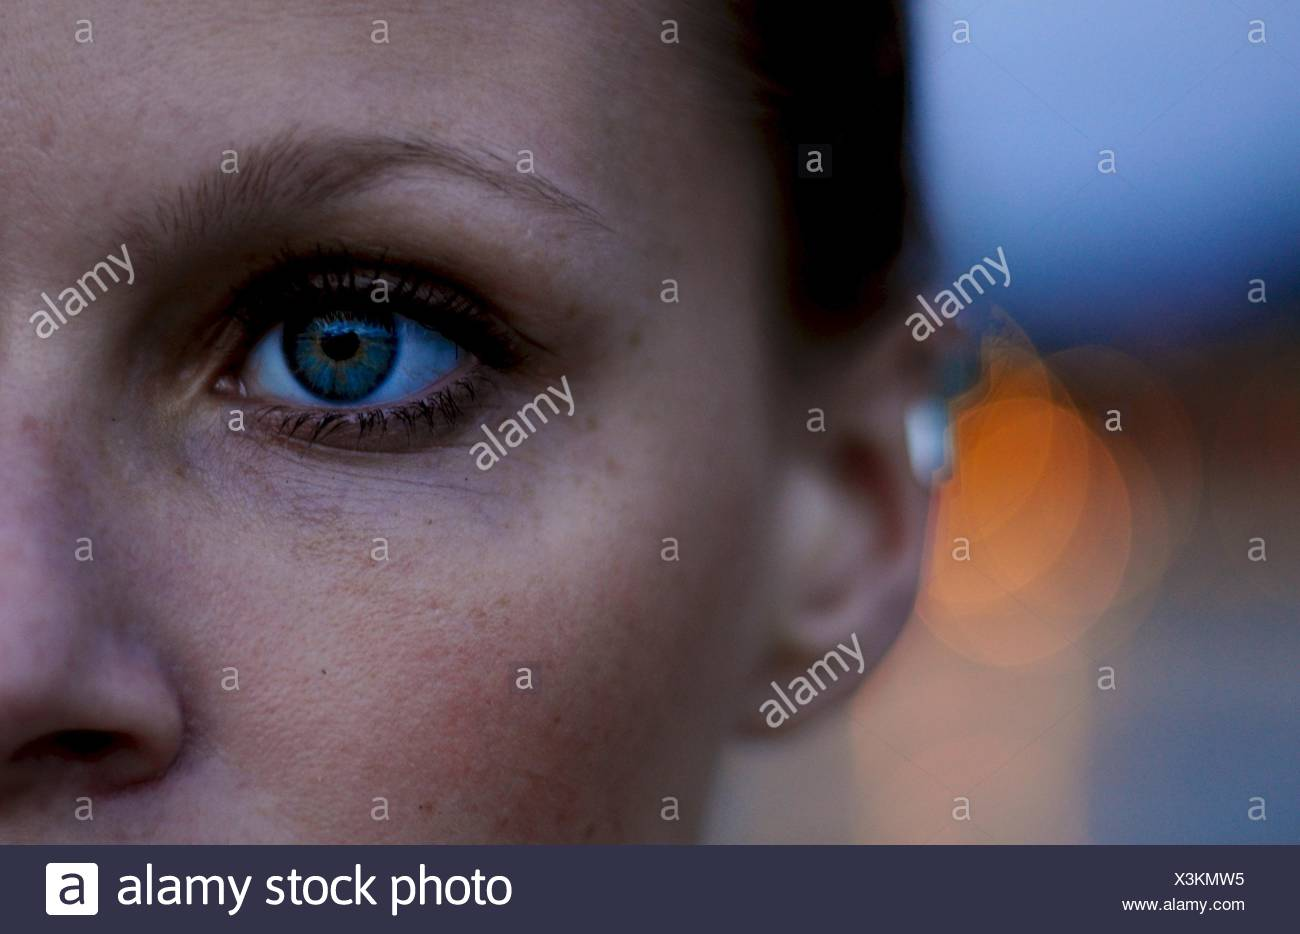 Close-up of a woman's face - Stock Image